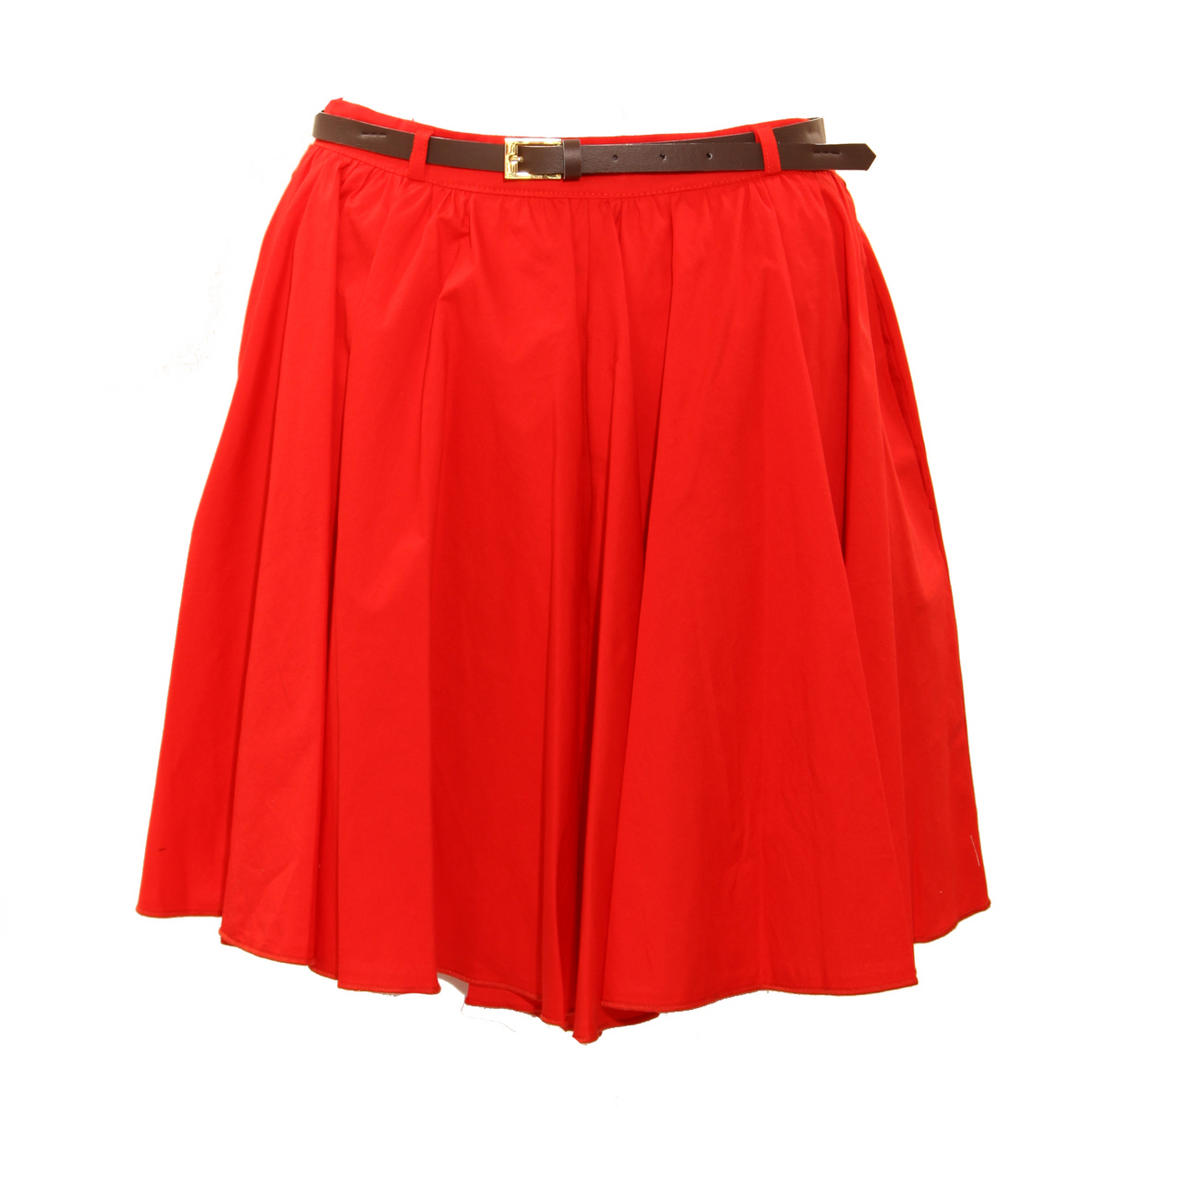 Item Details - Red Belted Skater Skirt